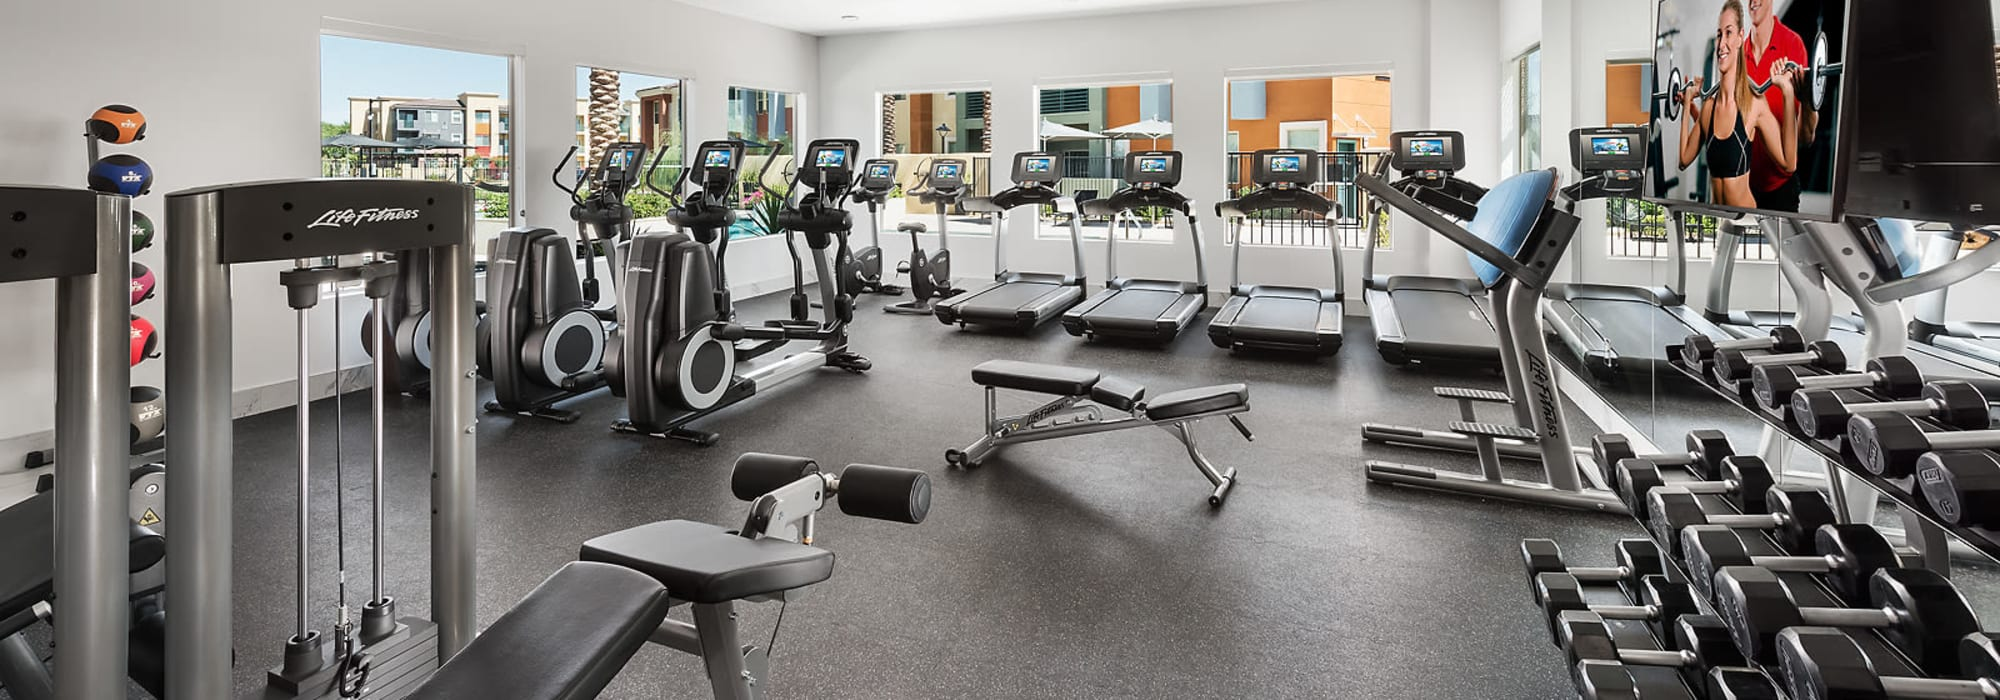 Resort style fitness center at Villa Vita Apartments